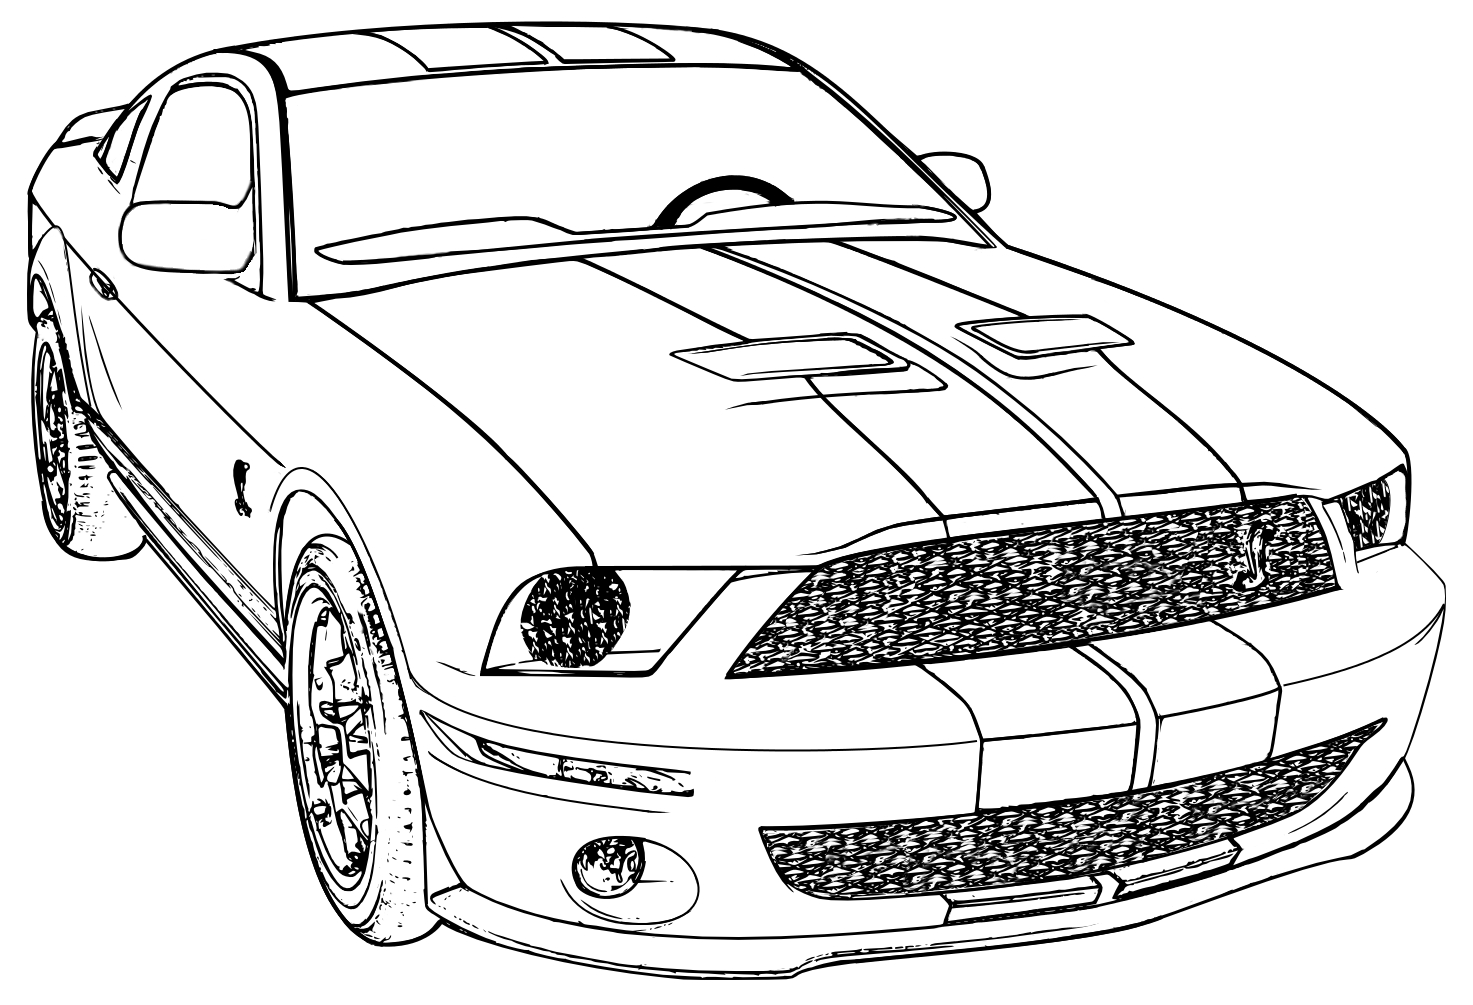 Mustang Coloring Pages Isolution To Print Free Sheets